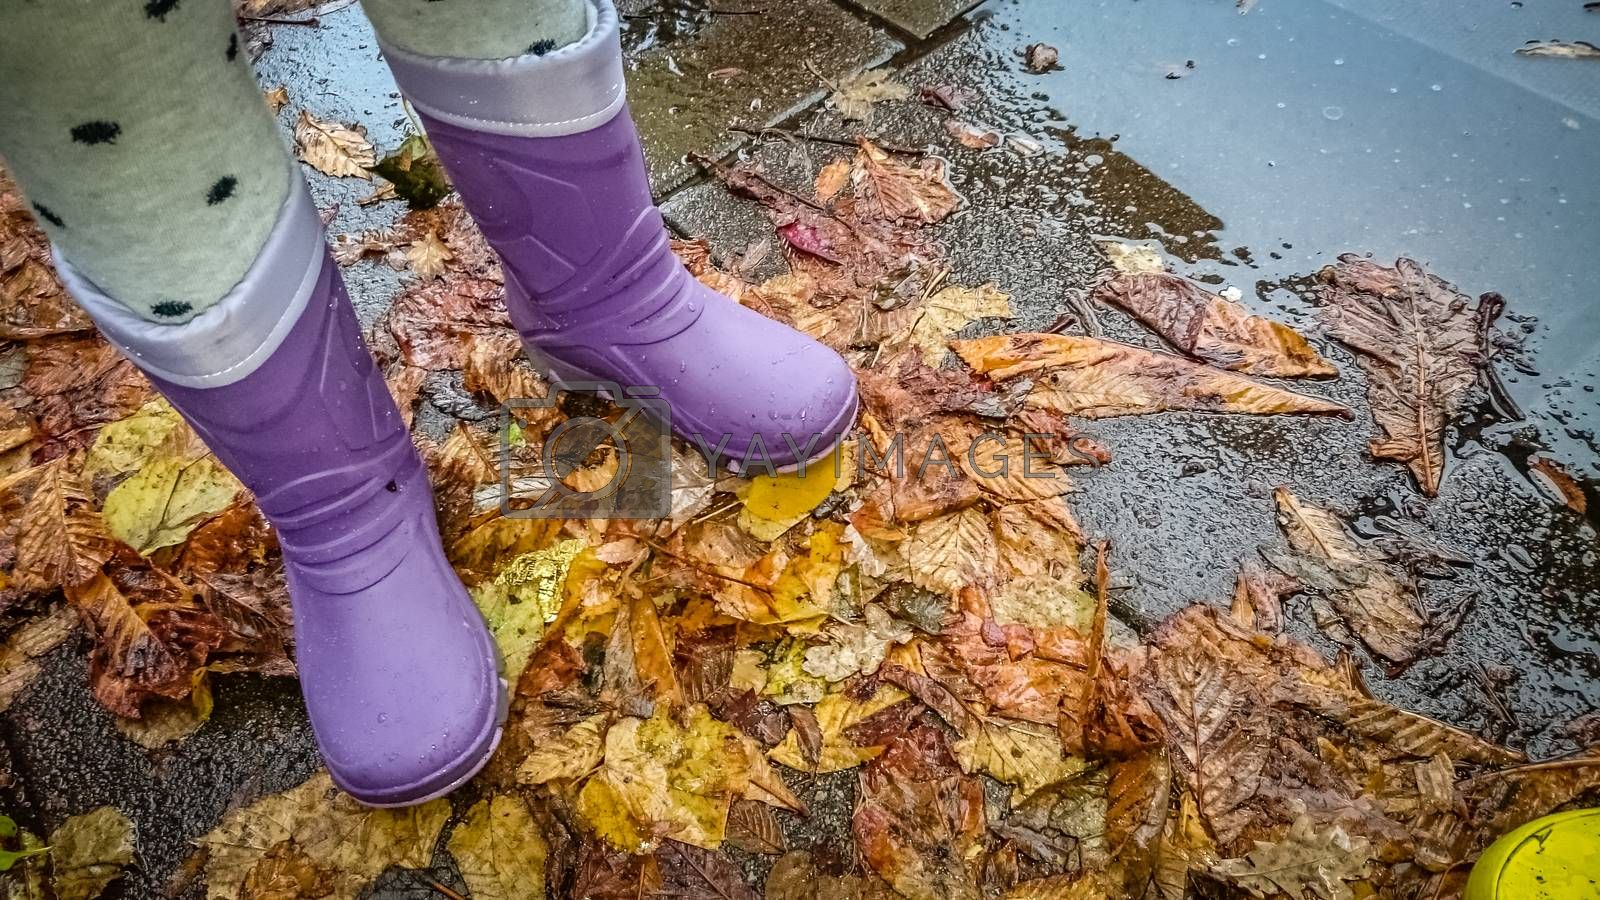 Little girl in her purple wellingtones standing on the old autumn fallen leaves in the street after the rain